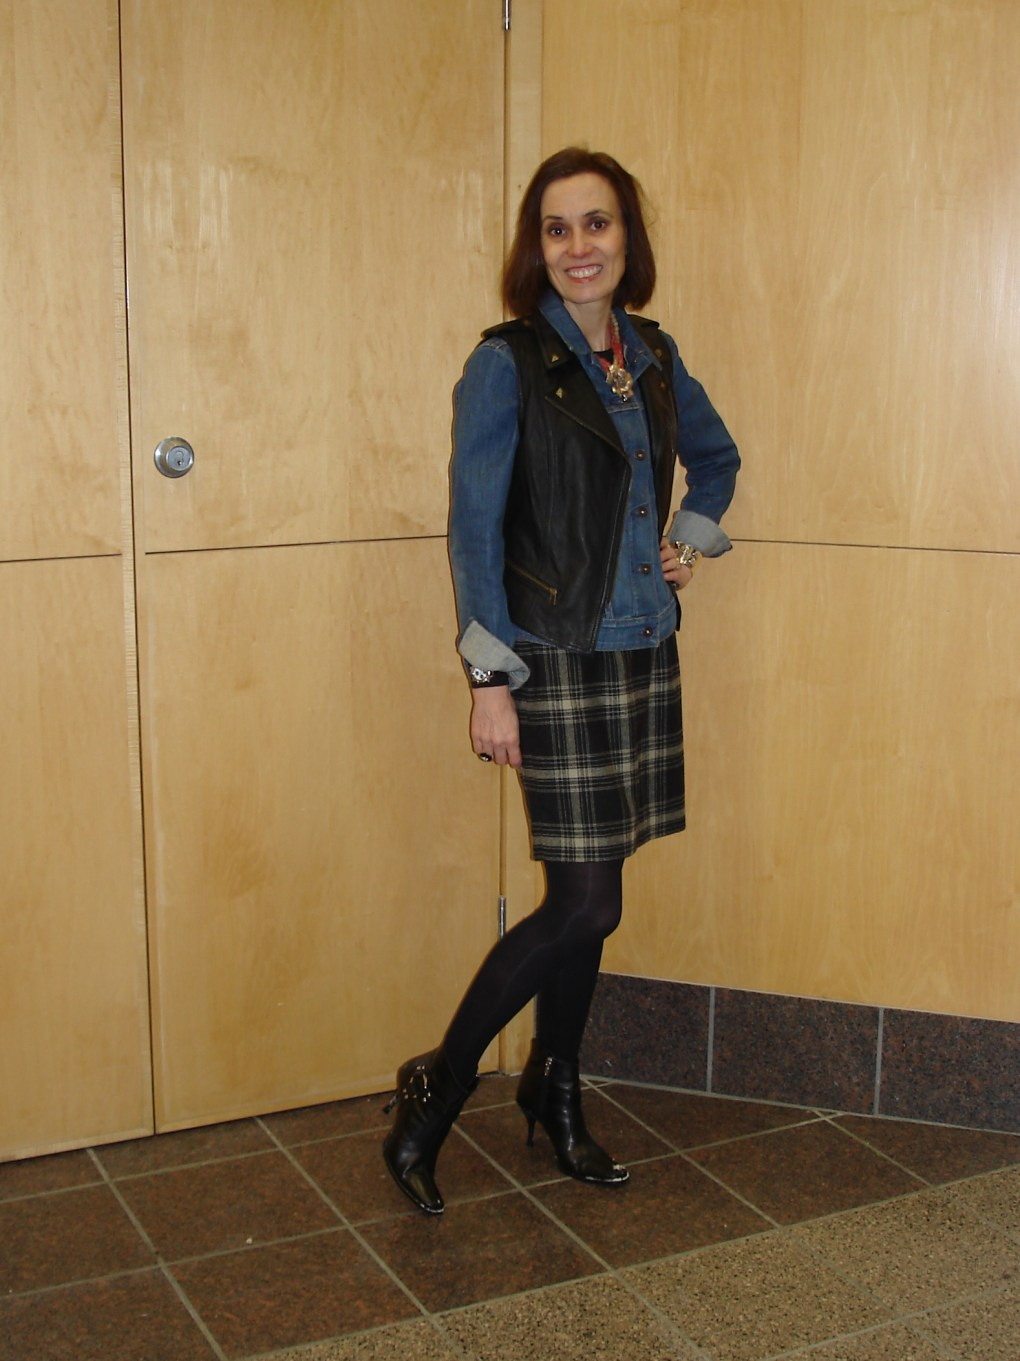 #fashionover40 woman in a plaid dress with denim jacket